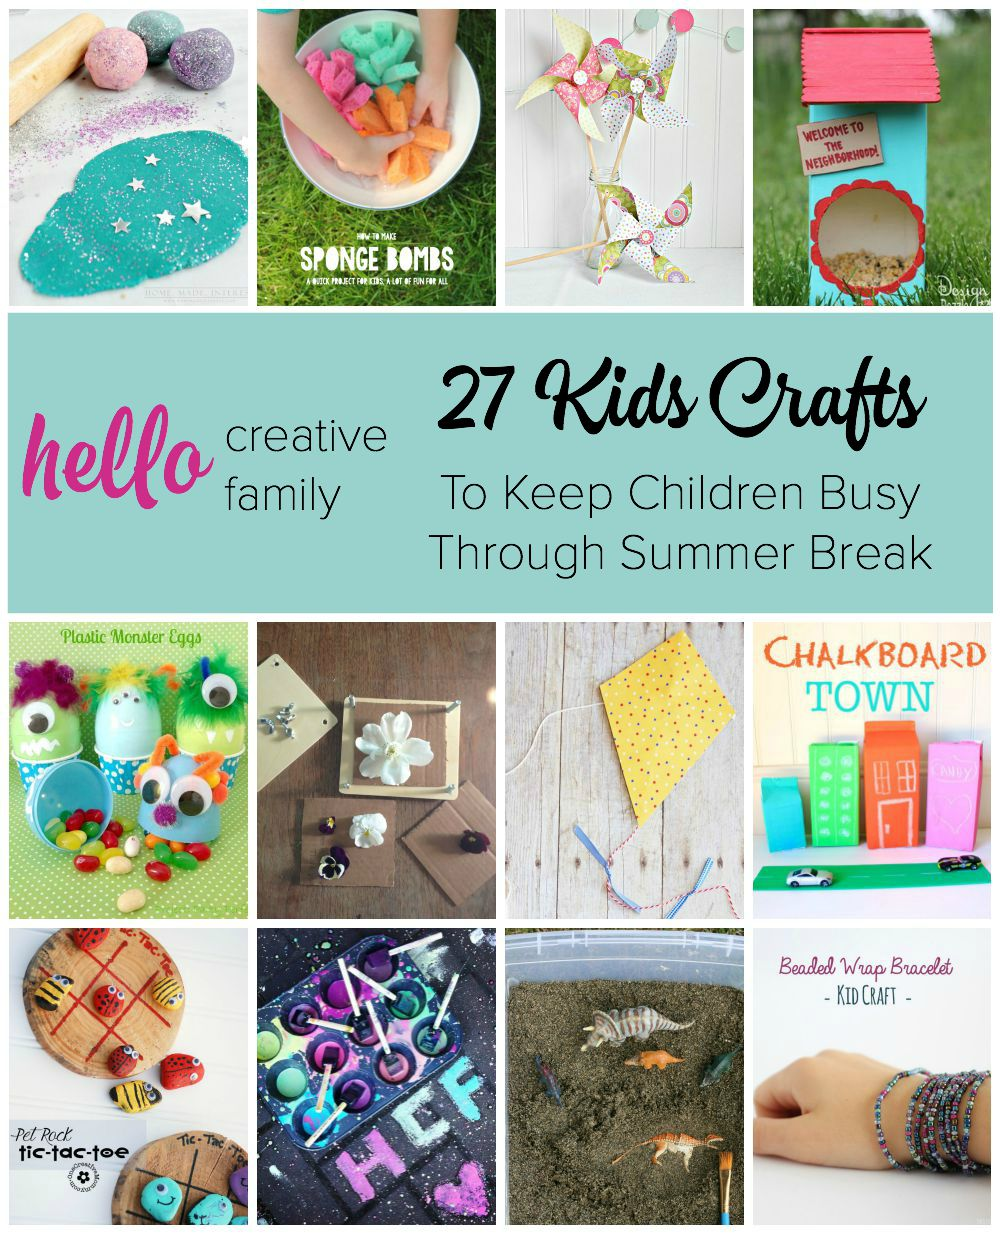 27 Kids Crafts to Keep Children Busy Through Summer Break  Hello Creative Family